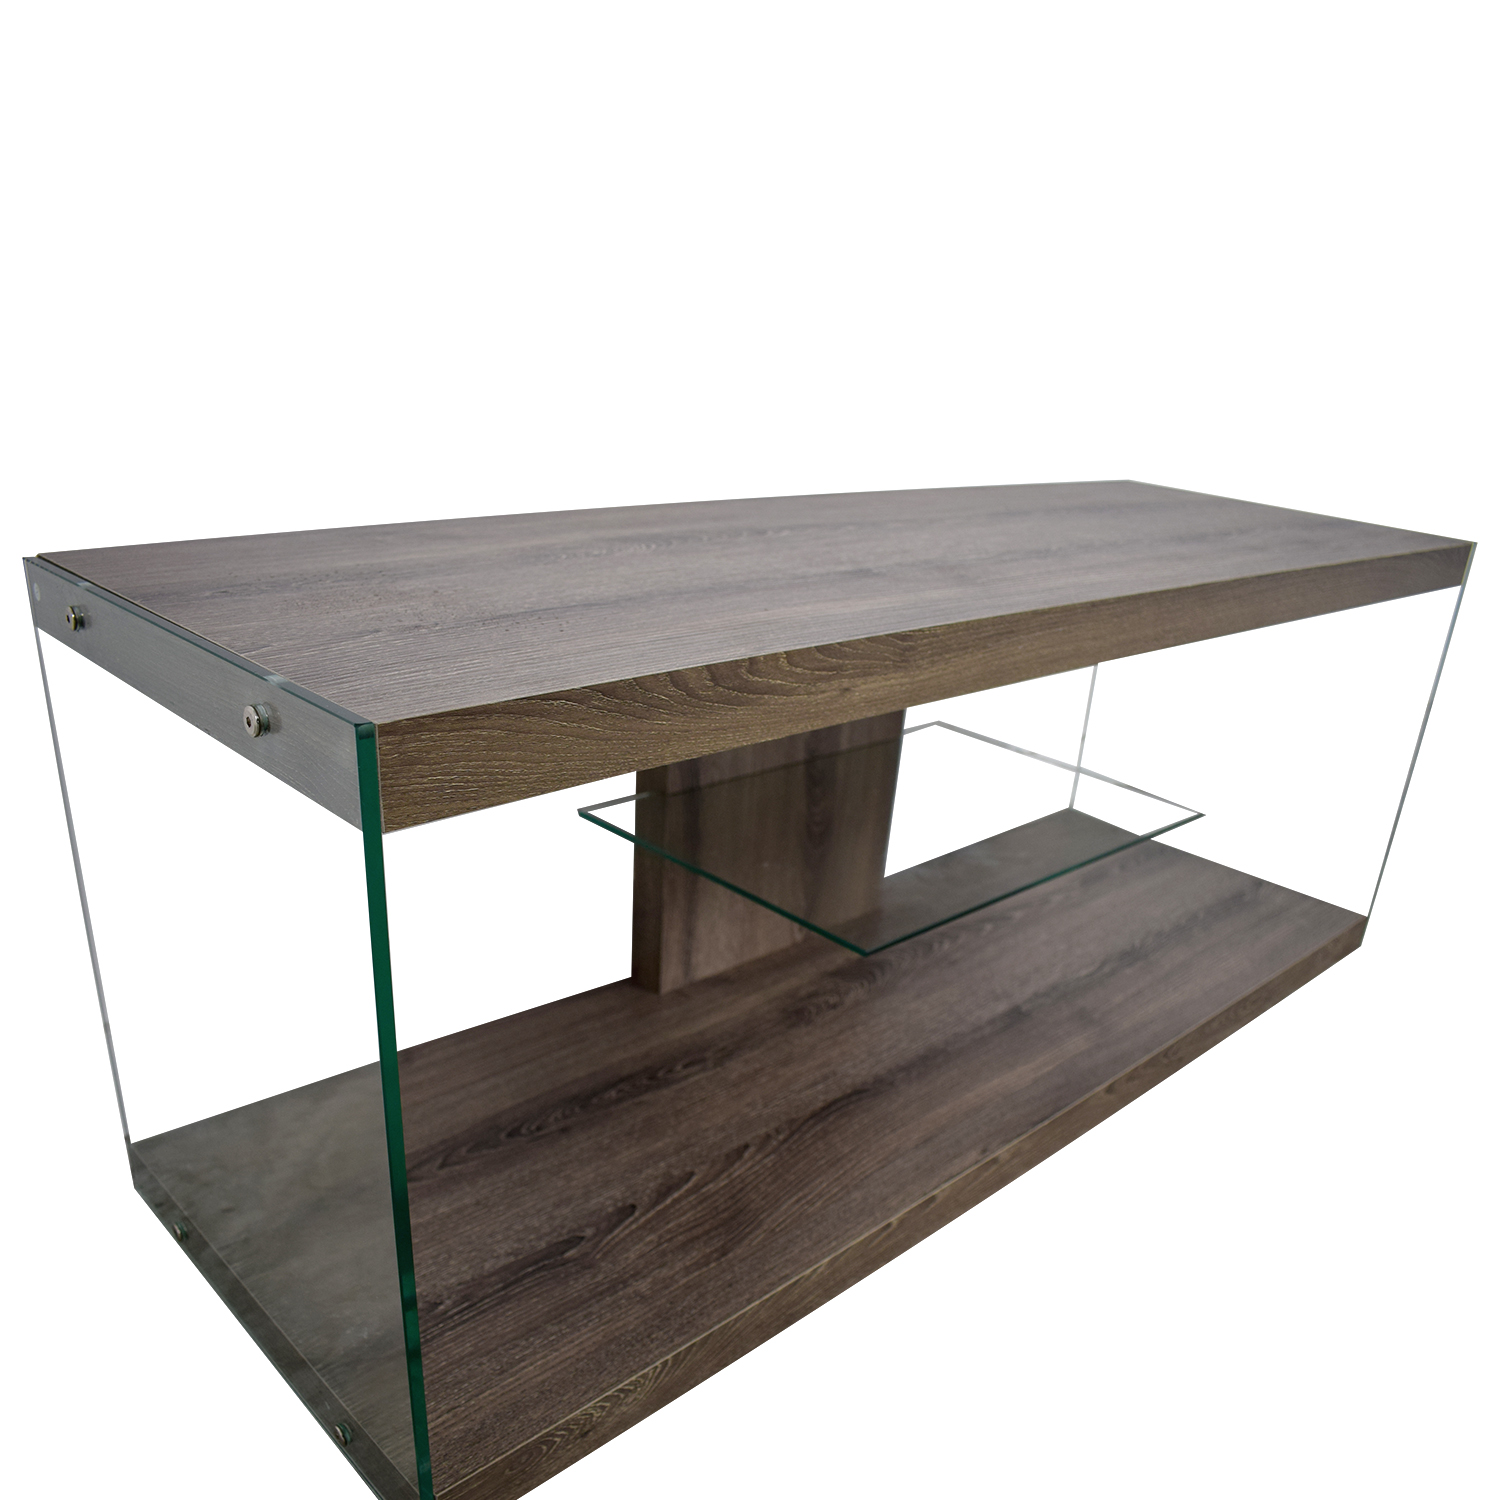 Monarch Specialties Monarch Specialties Wood and Metal TV Stand dimensions